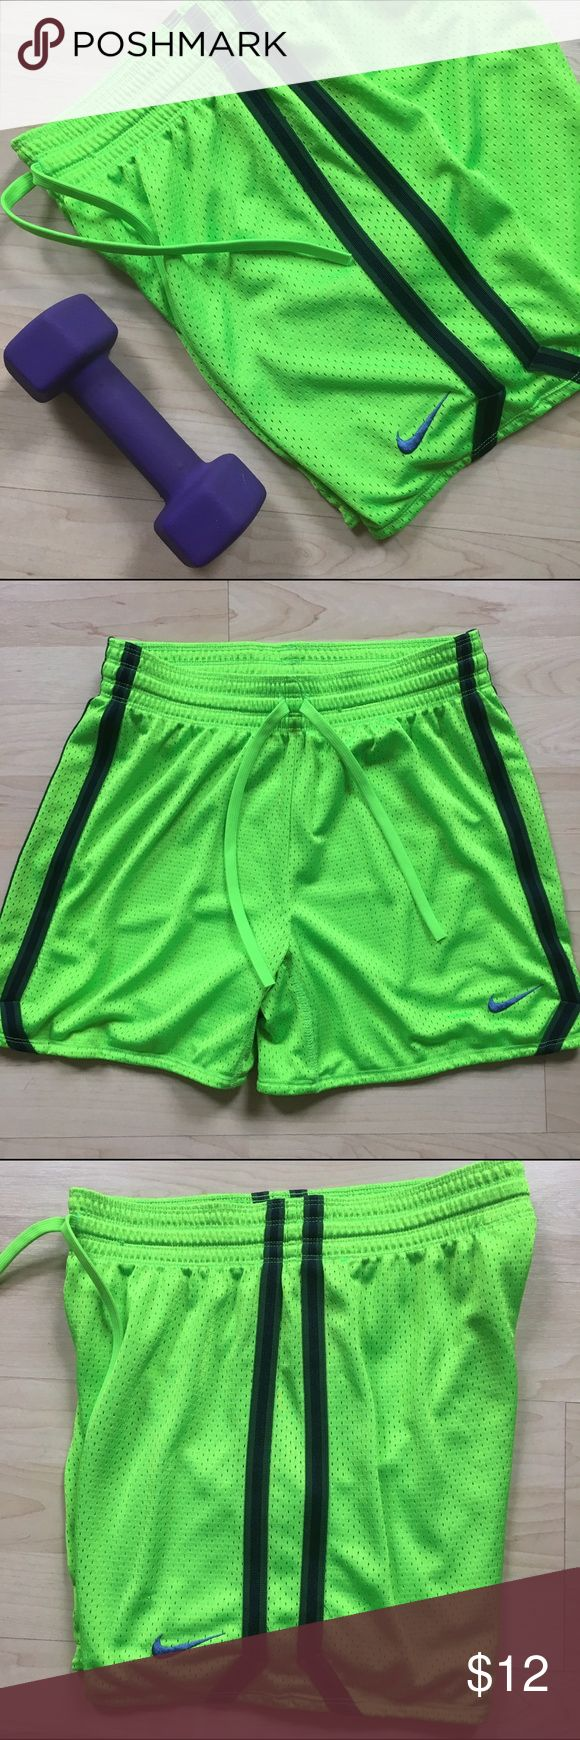 💚 Neon Green Nike Workout Shorts Cute shorts to wear at the gym! The stripes on the side are dark green and a dark navy blue. In excellent condition! Nike Shorts